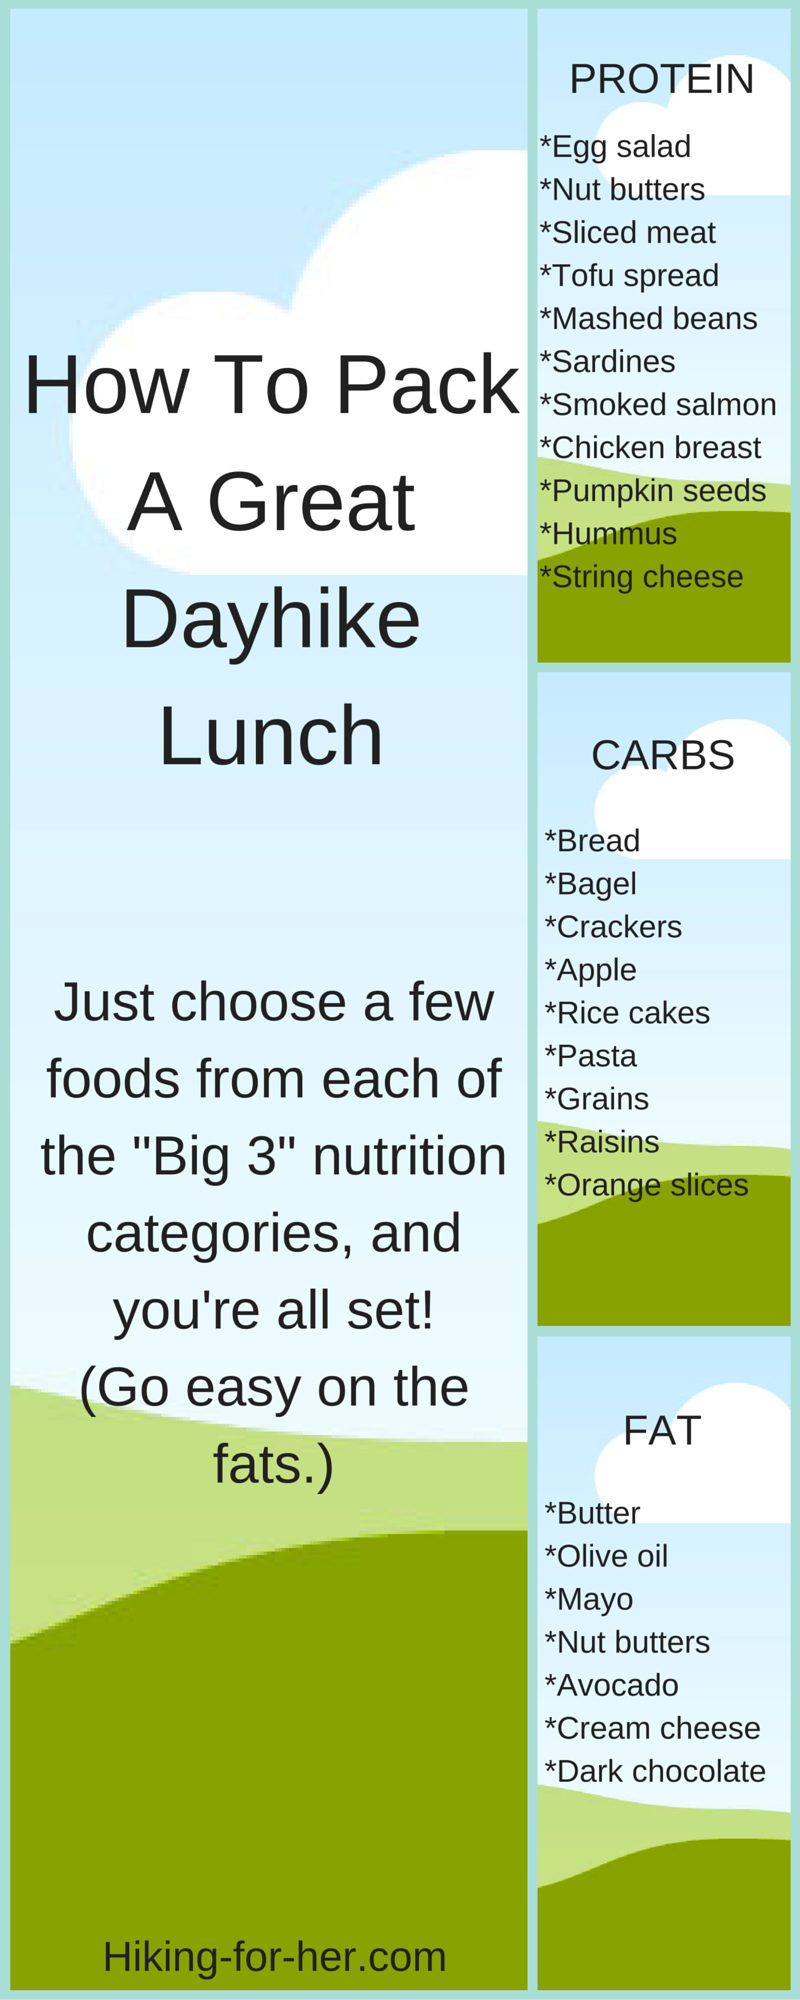 Be sure you have enough energy and stamina on your hike with great tasting day hike food. How to pack a great day hike lunch, in 3 easy steps!